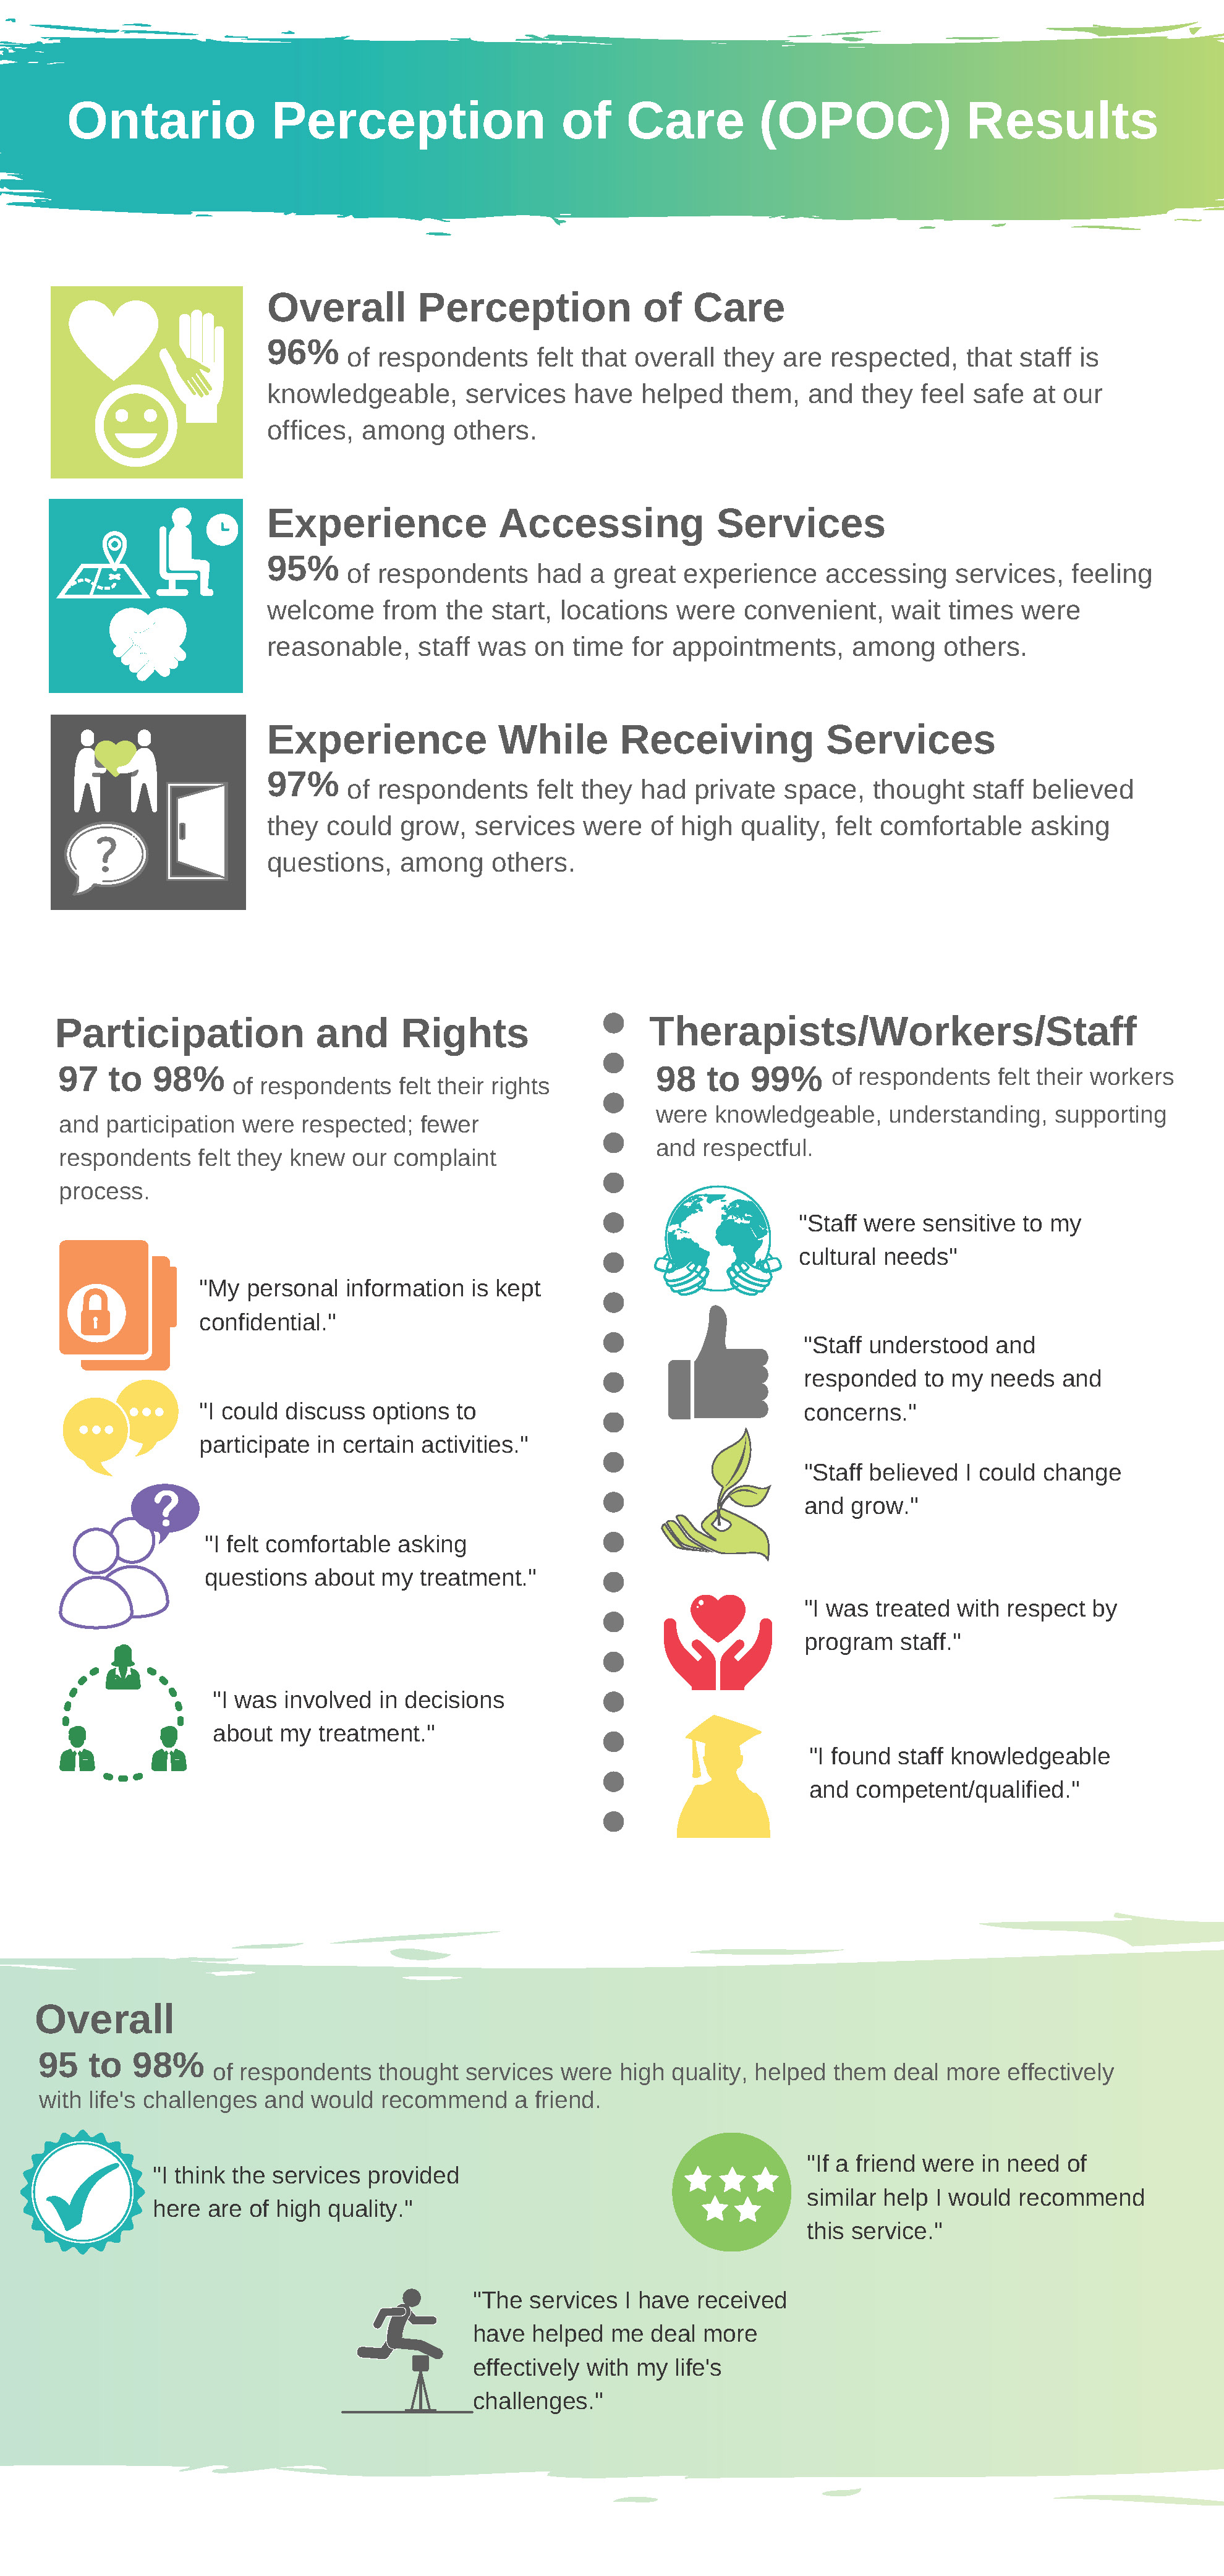 Ontario Perception of Care results